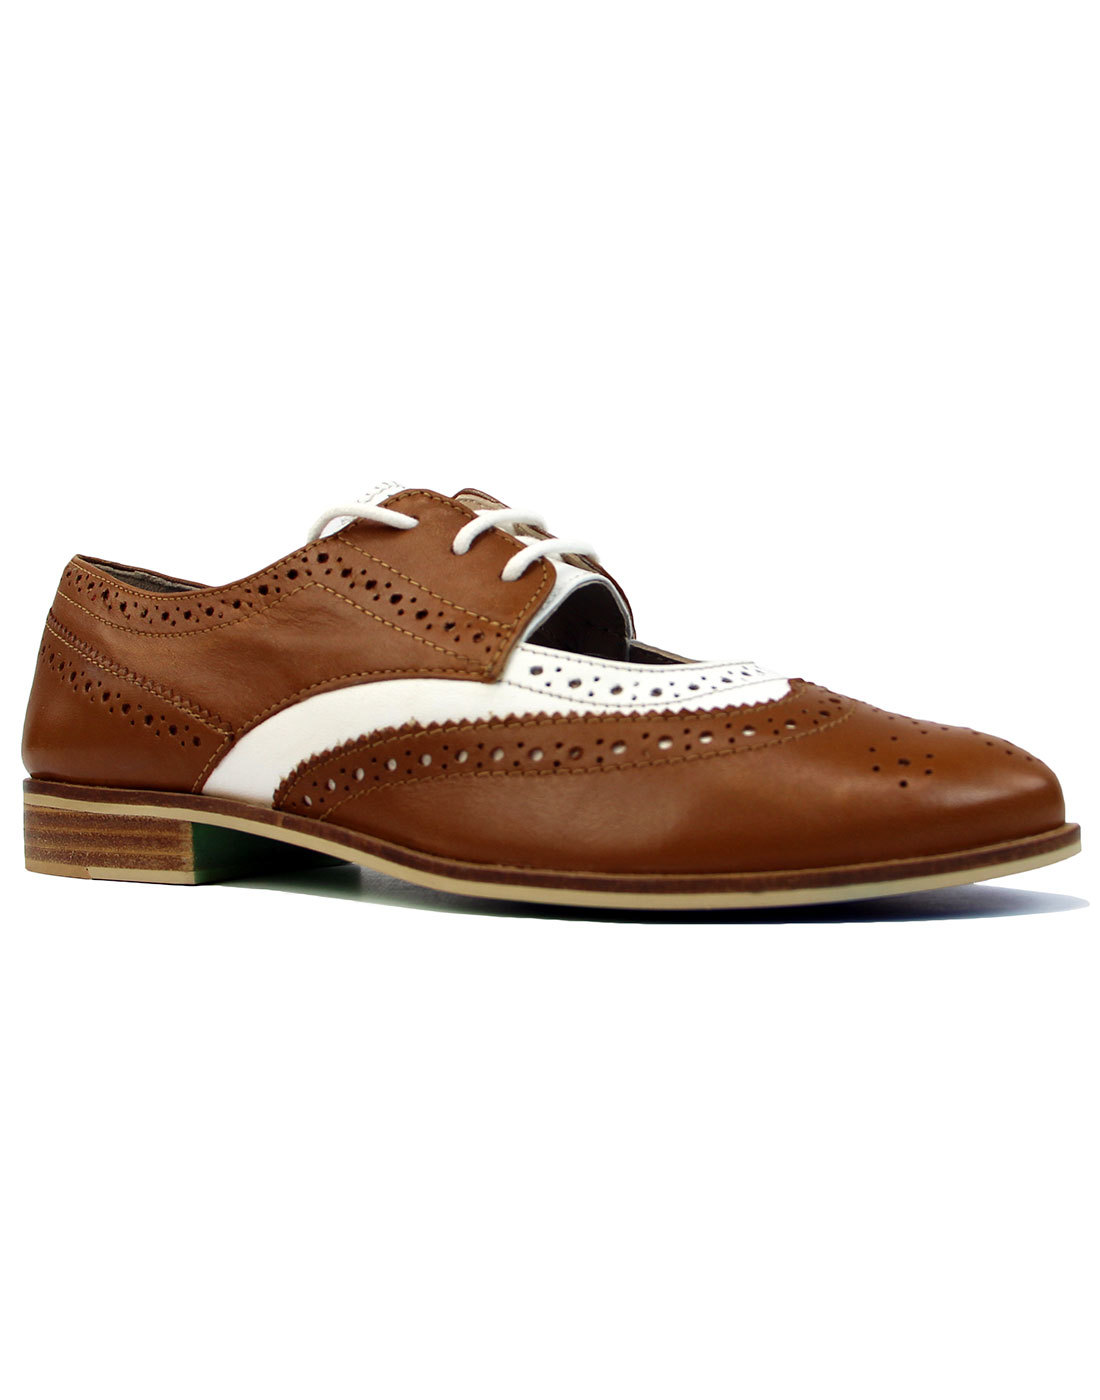 Dockery JASPER JAMES by LACEYS Retro Brogues Tan